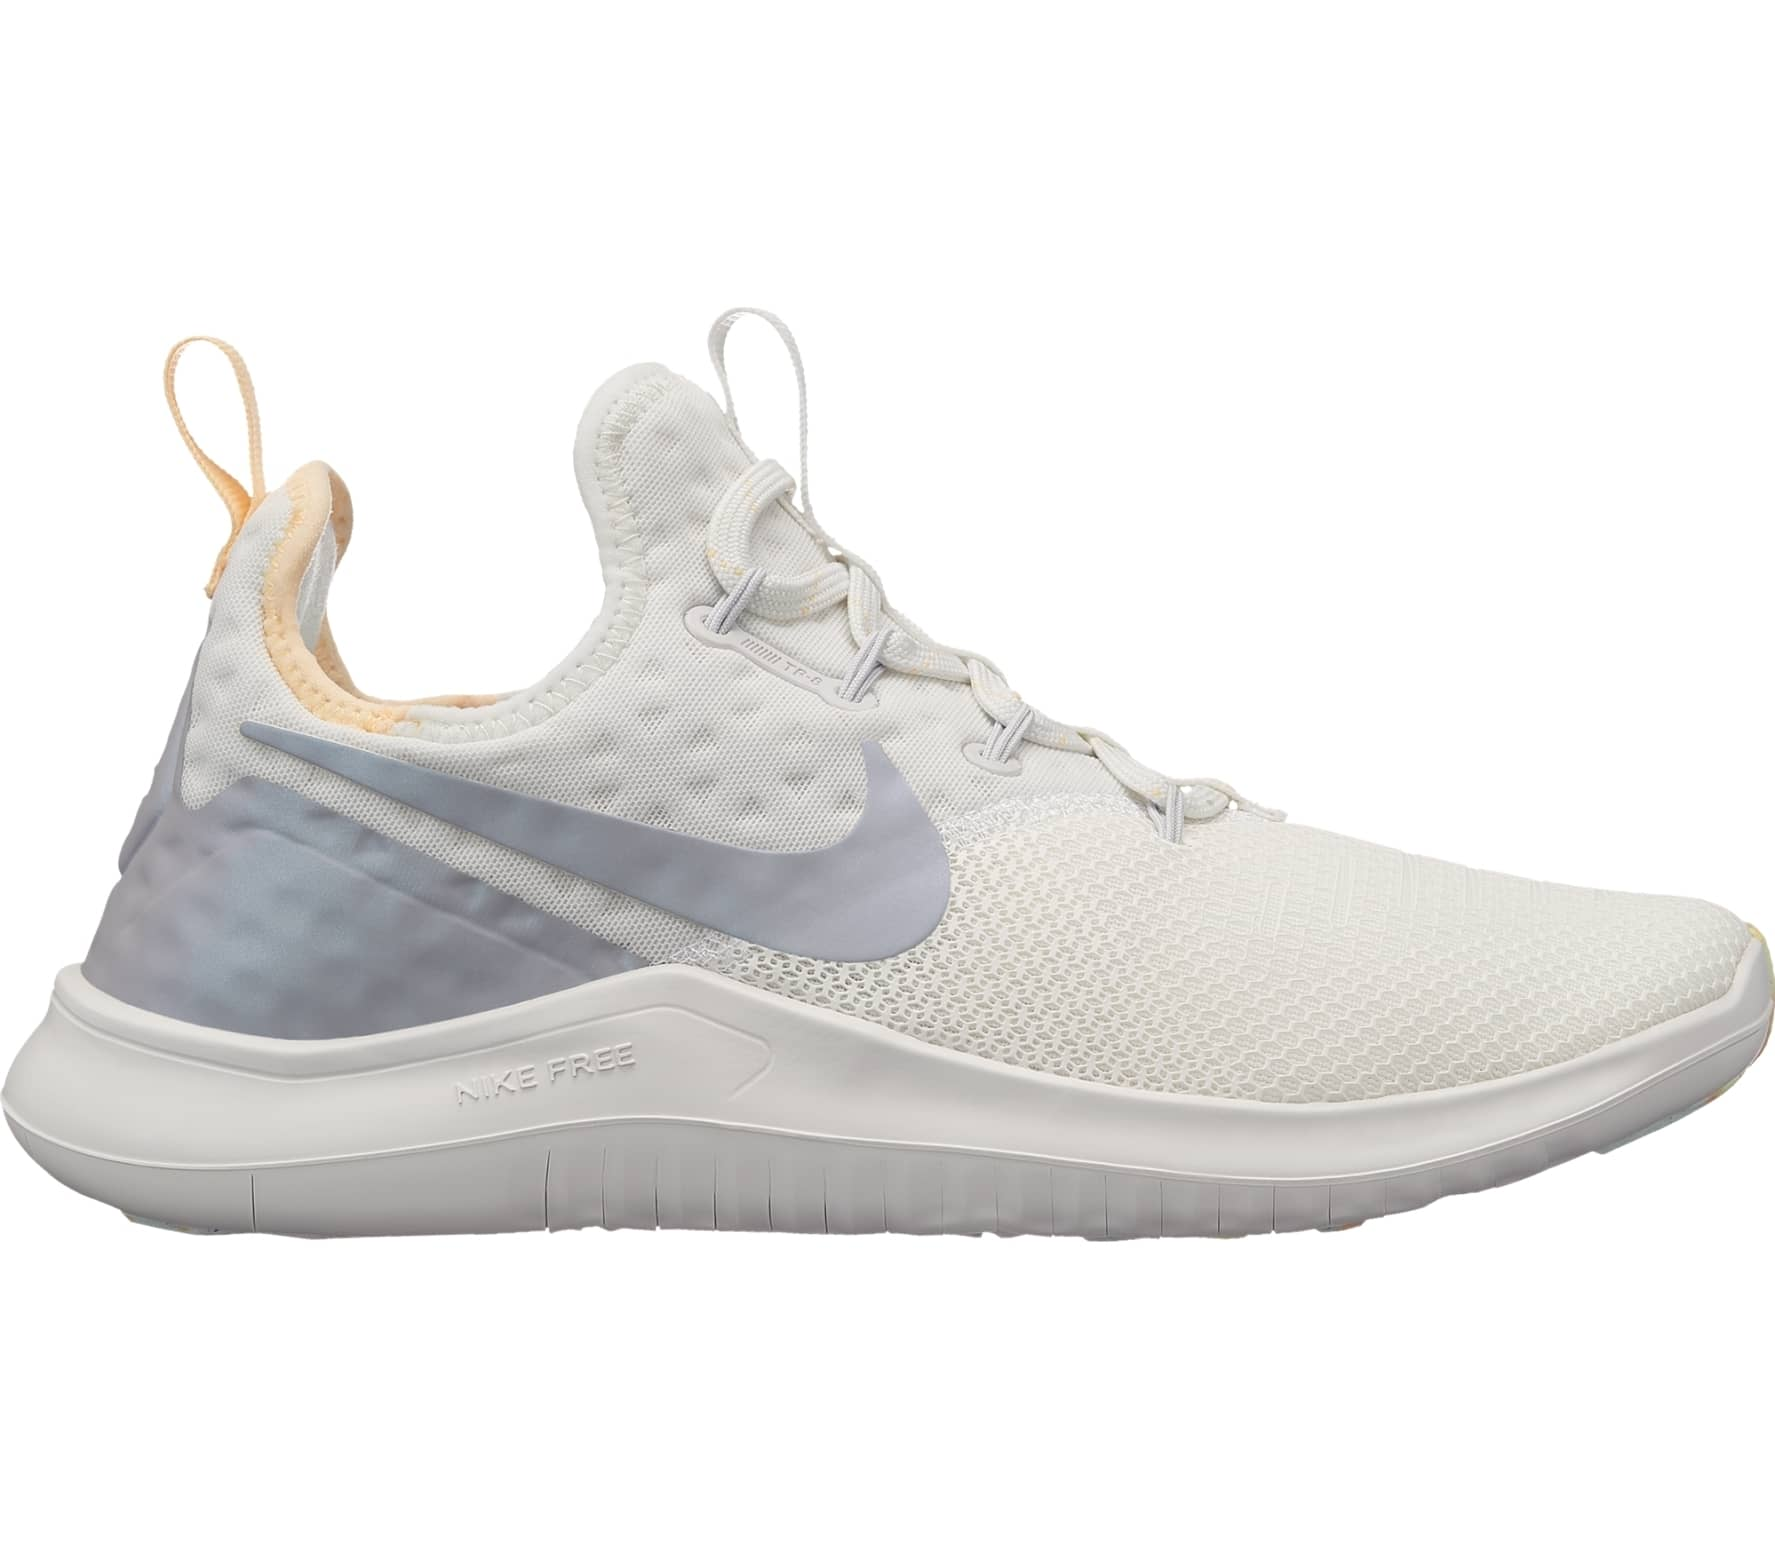 new arrival e5f4c 05121 Nike - Free TR 8 Rise women s training shoes (white grey)